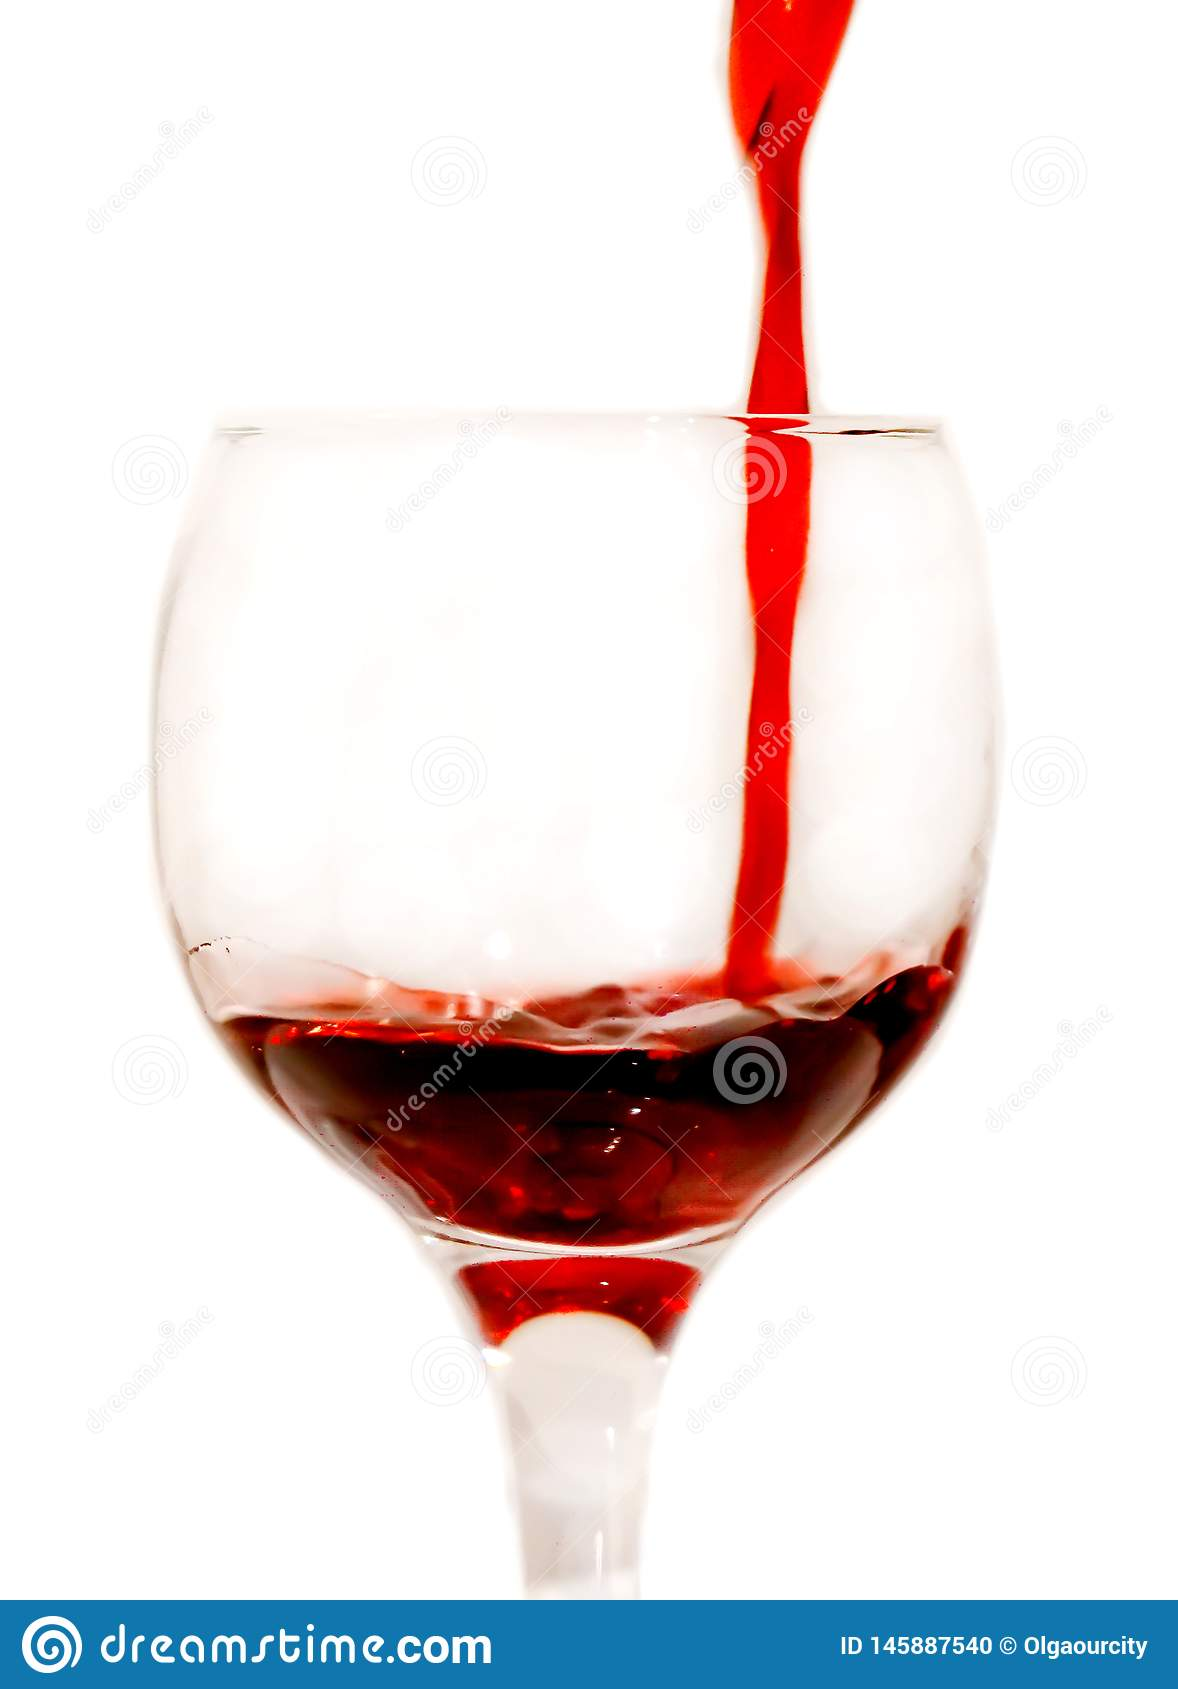 Red scarlet wine is poured into a glass